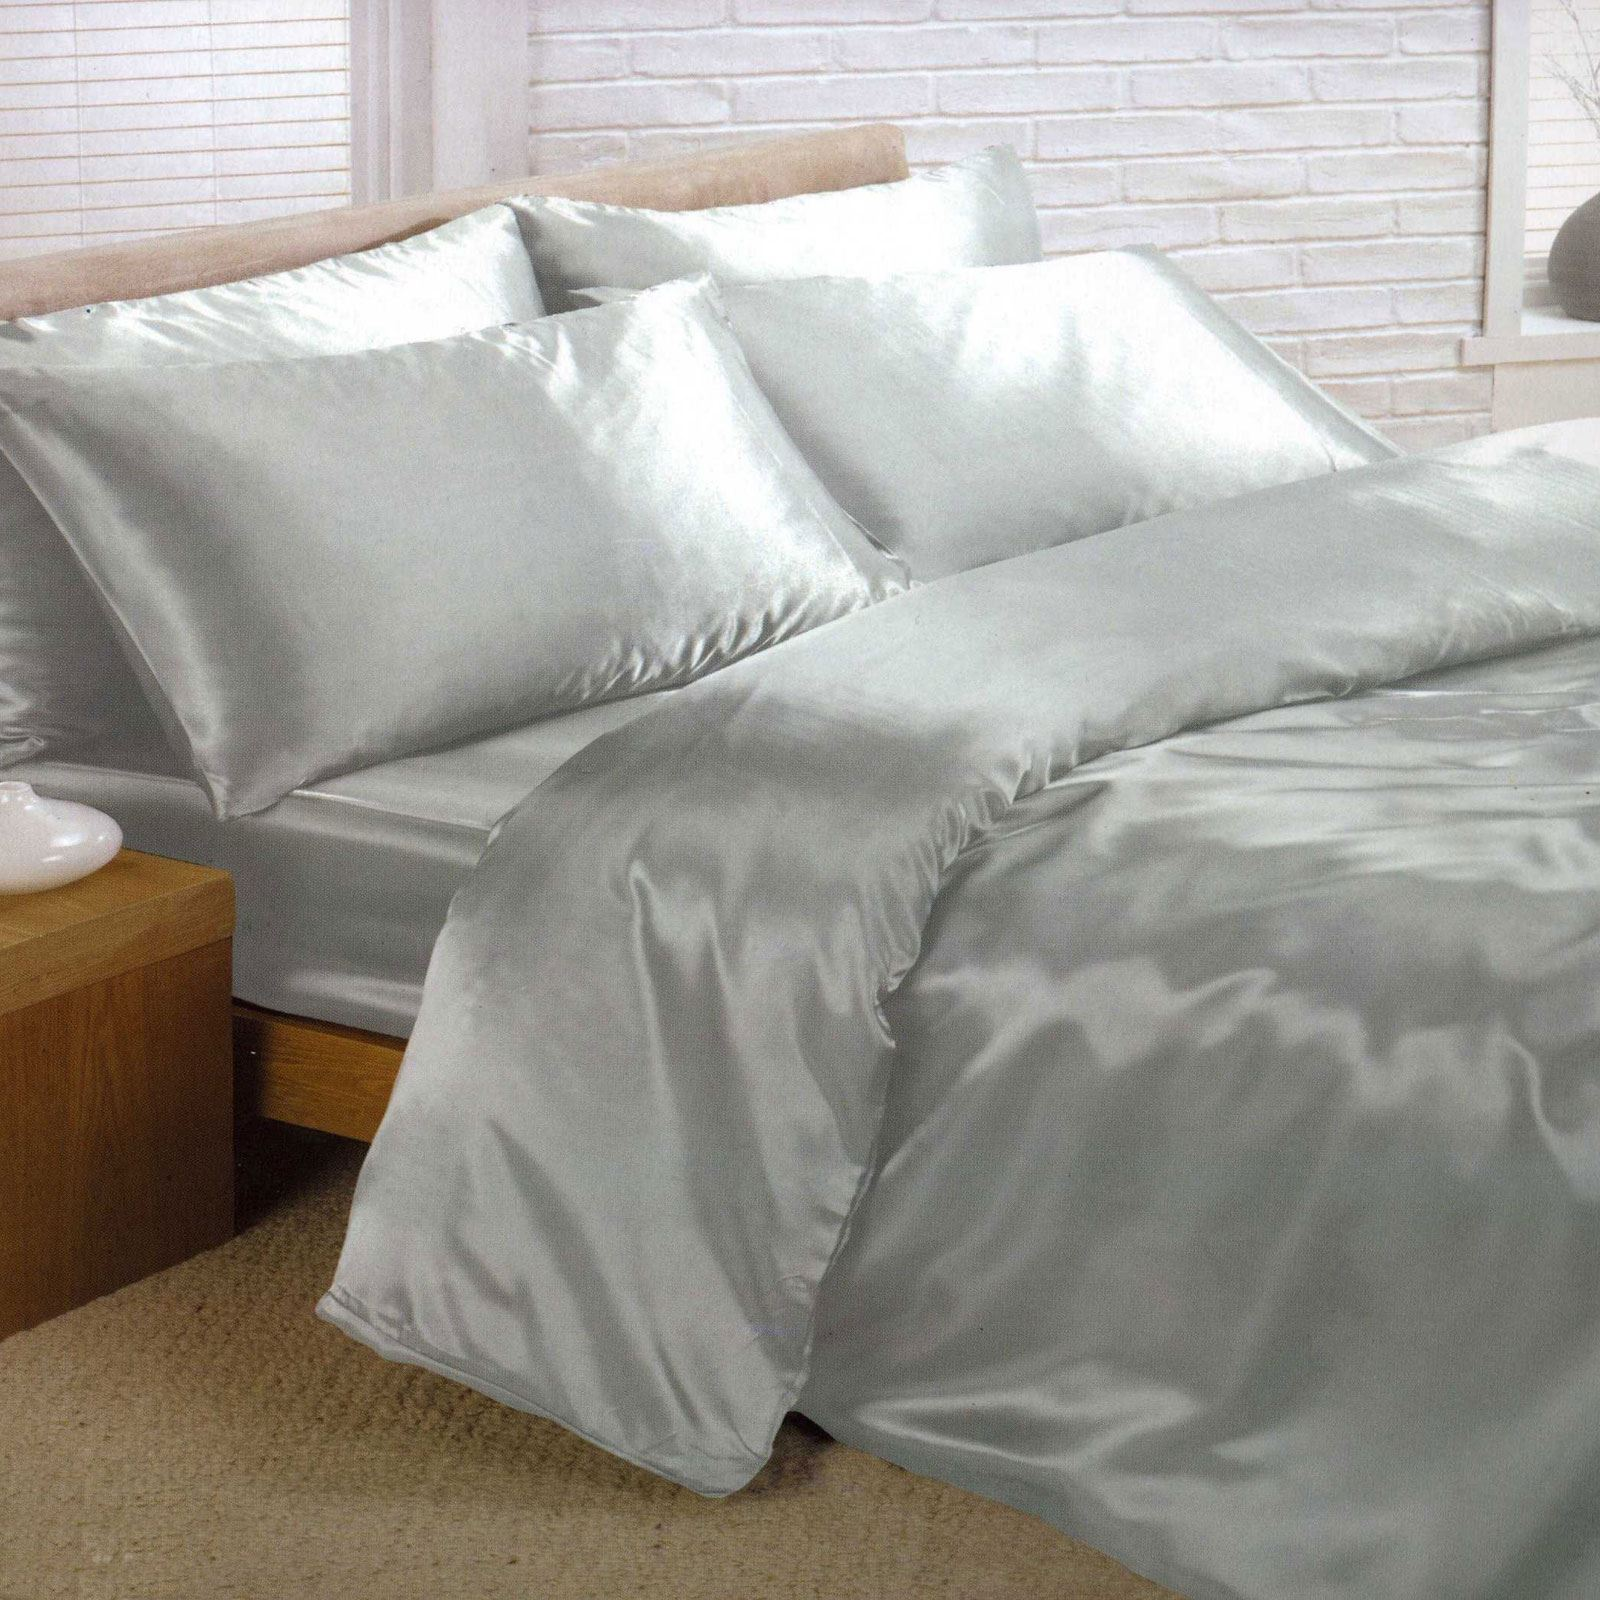 Sheets. Redecorate your room without a major overhaul using sheets. Check out our collection of bed sheets in tons of styles and colors. Time to go under cover(s).